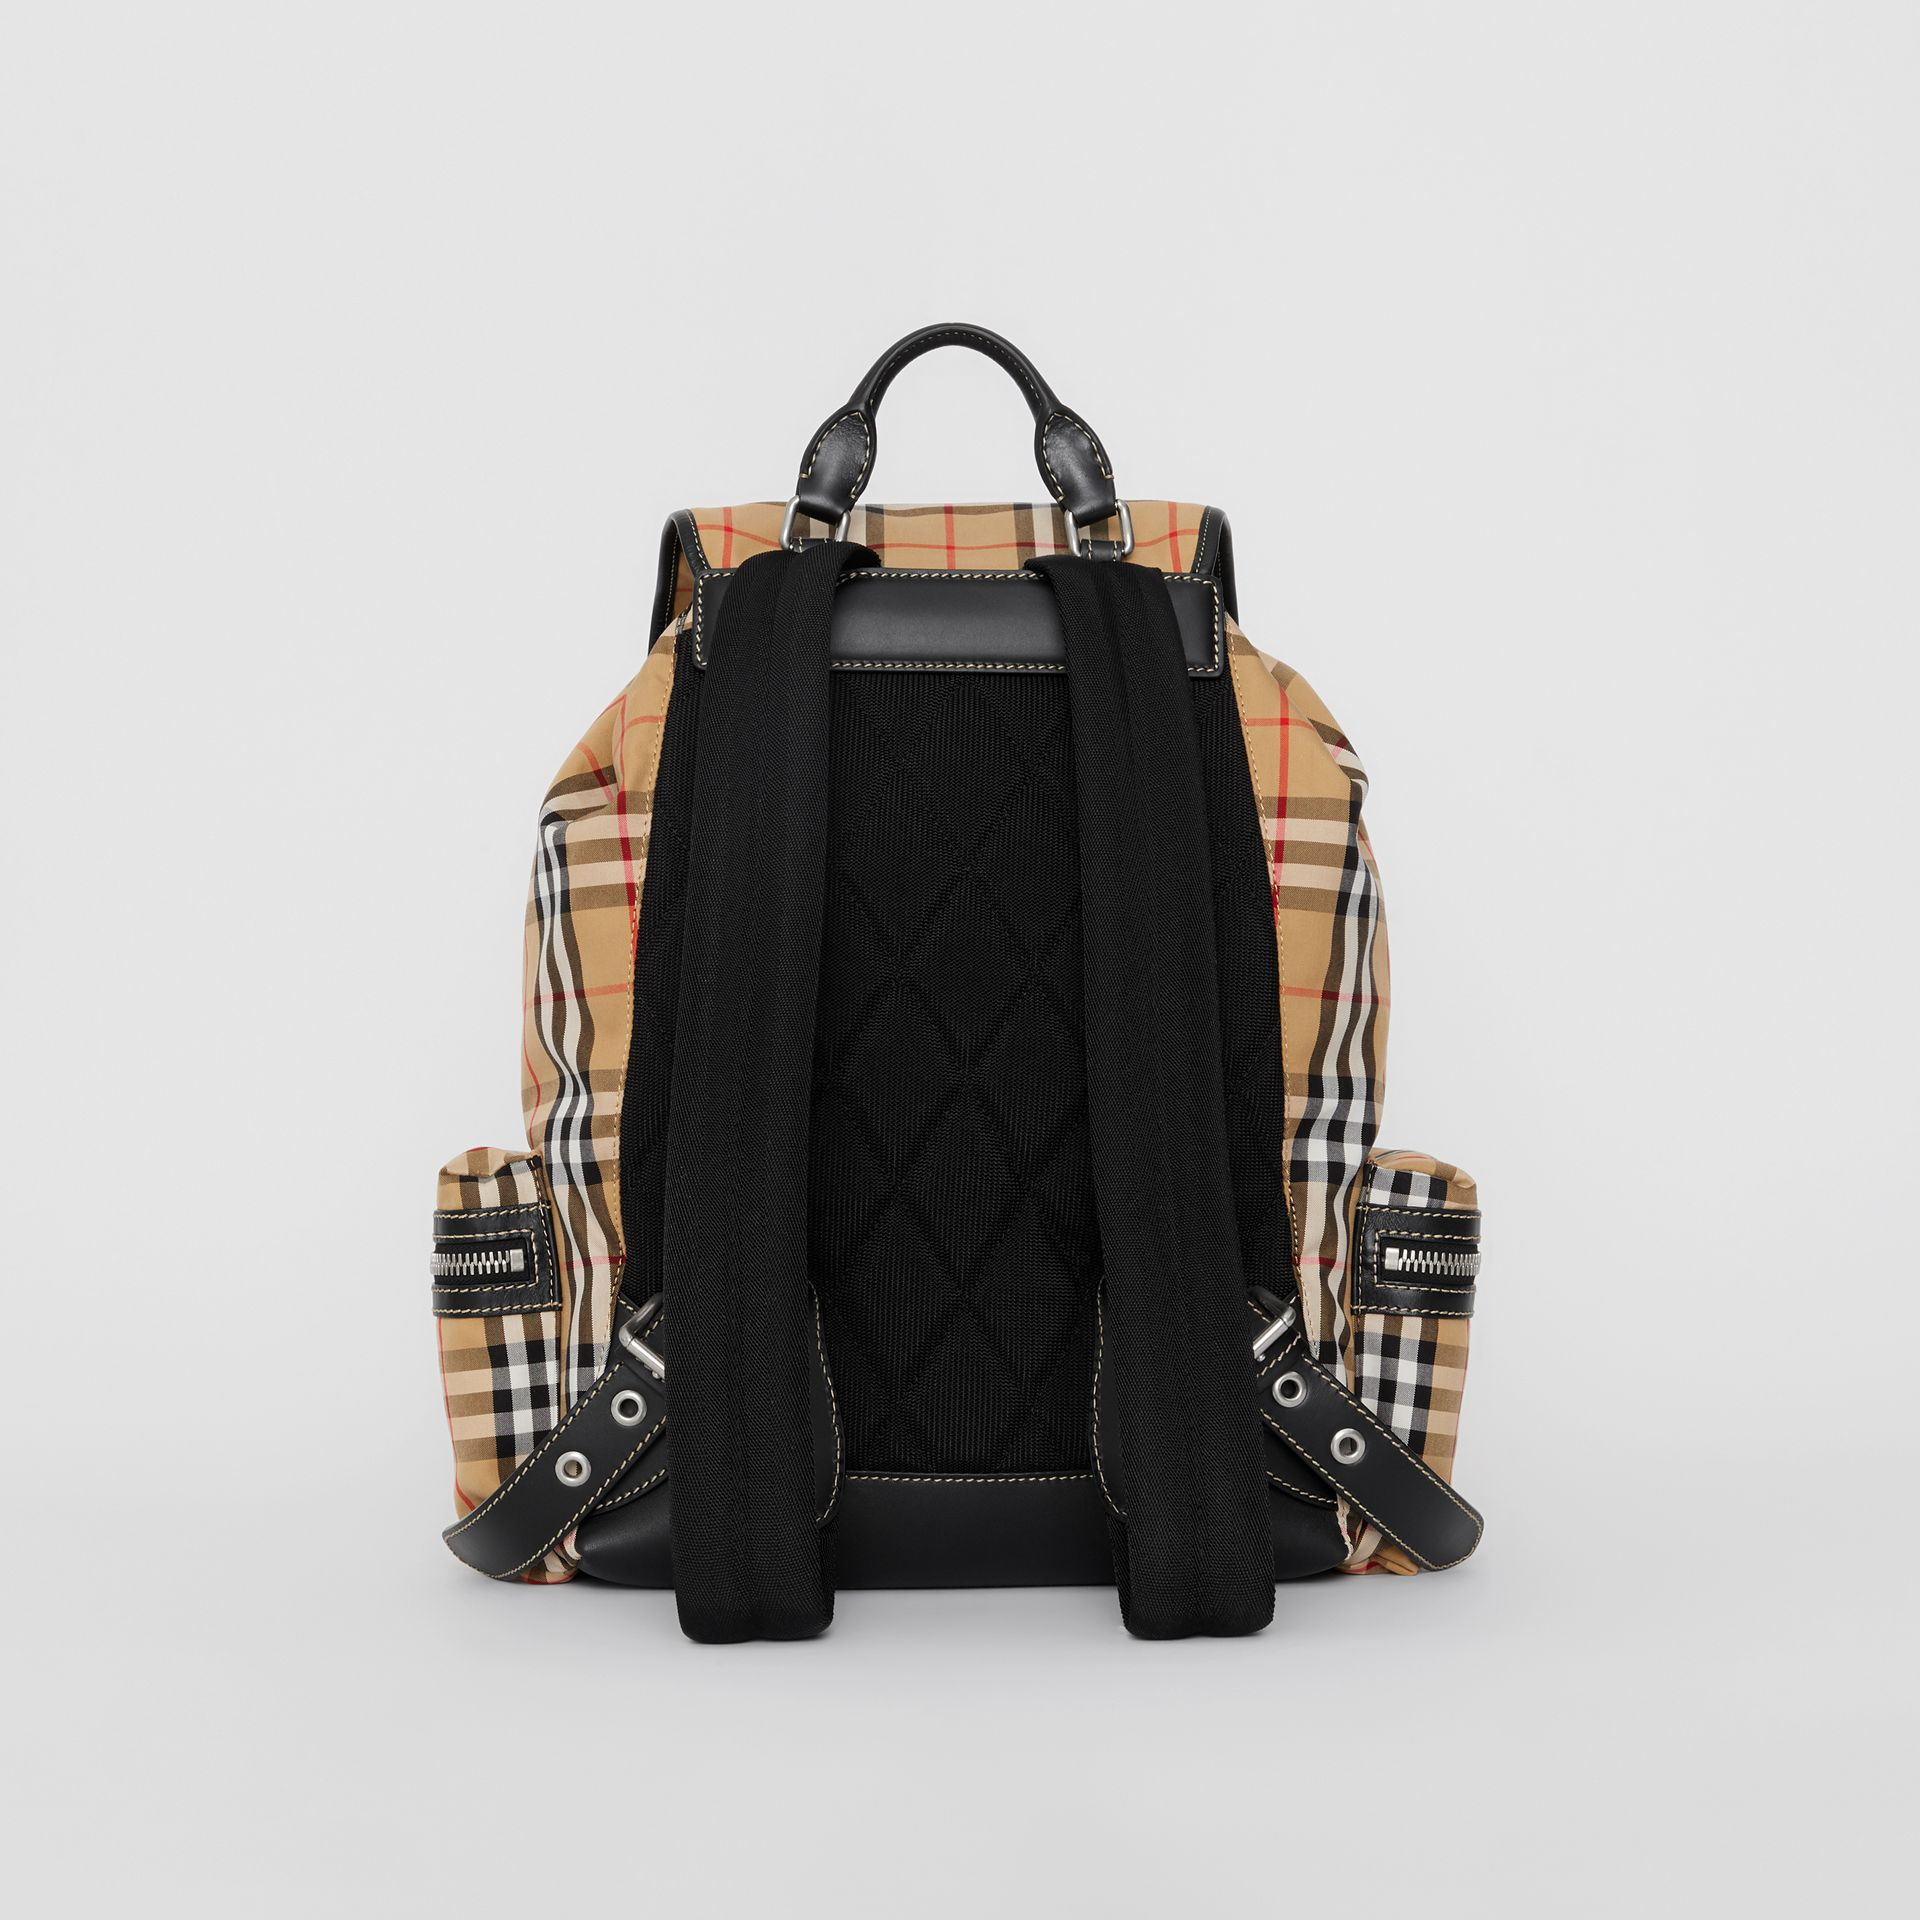 Grand sac The Rucksack à motif Vintage check (Jaune Antique) | Burberry - photo de la galerie 7